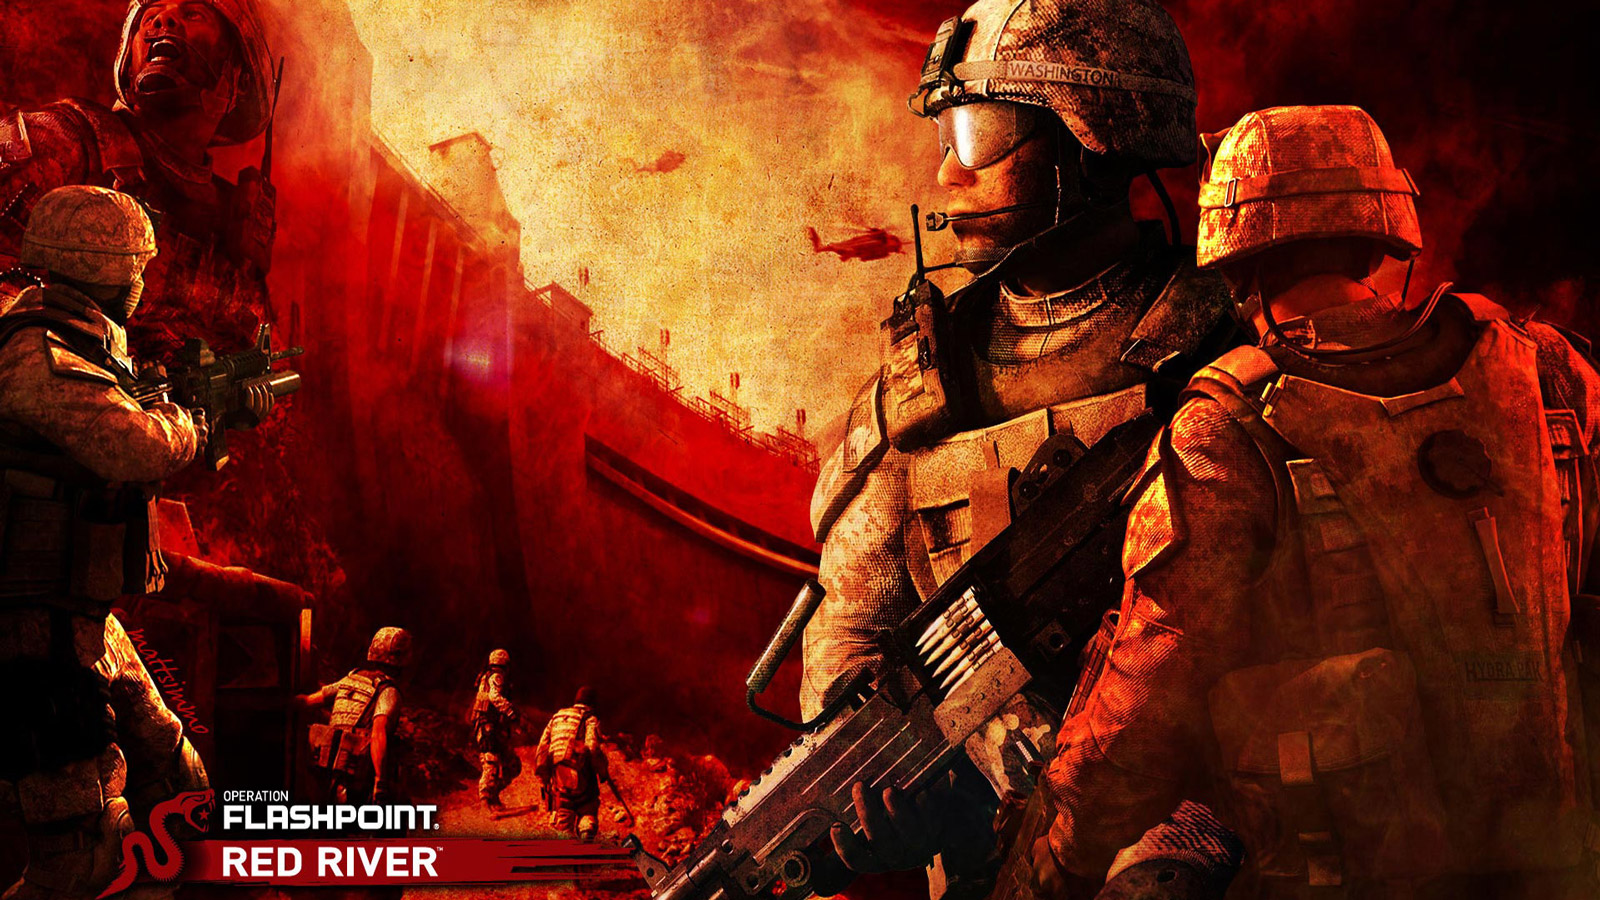 Operation Flashpoint: Red River Wallpaper in 1600x900